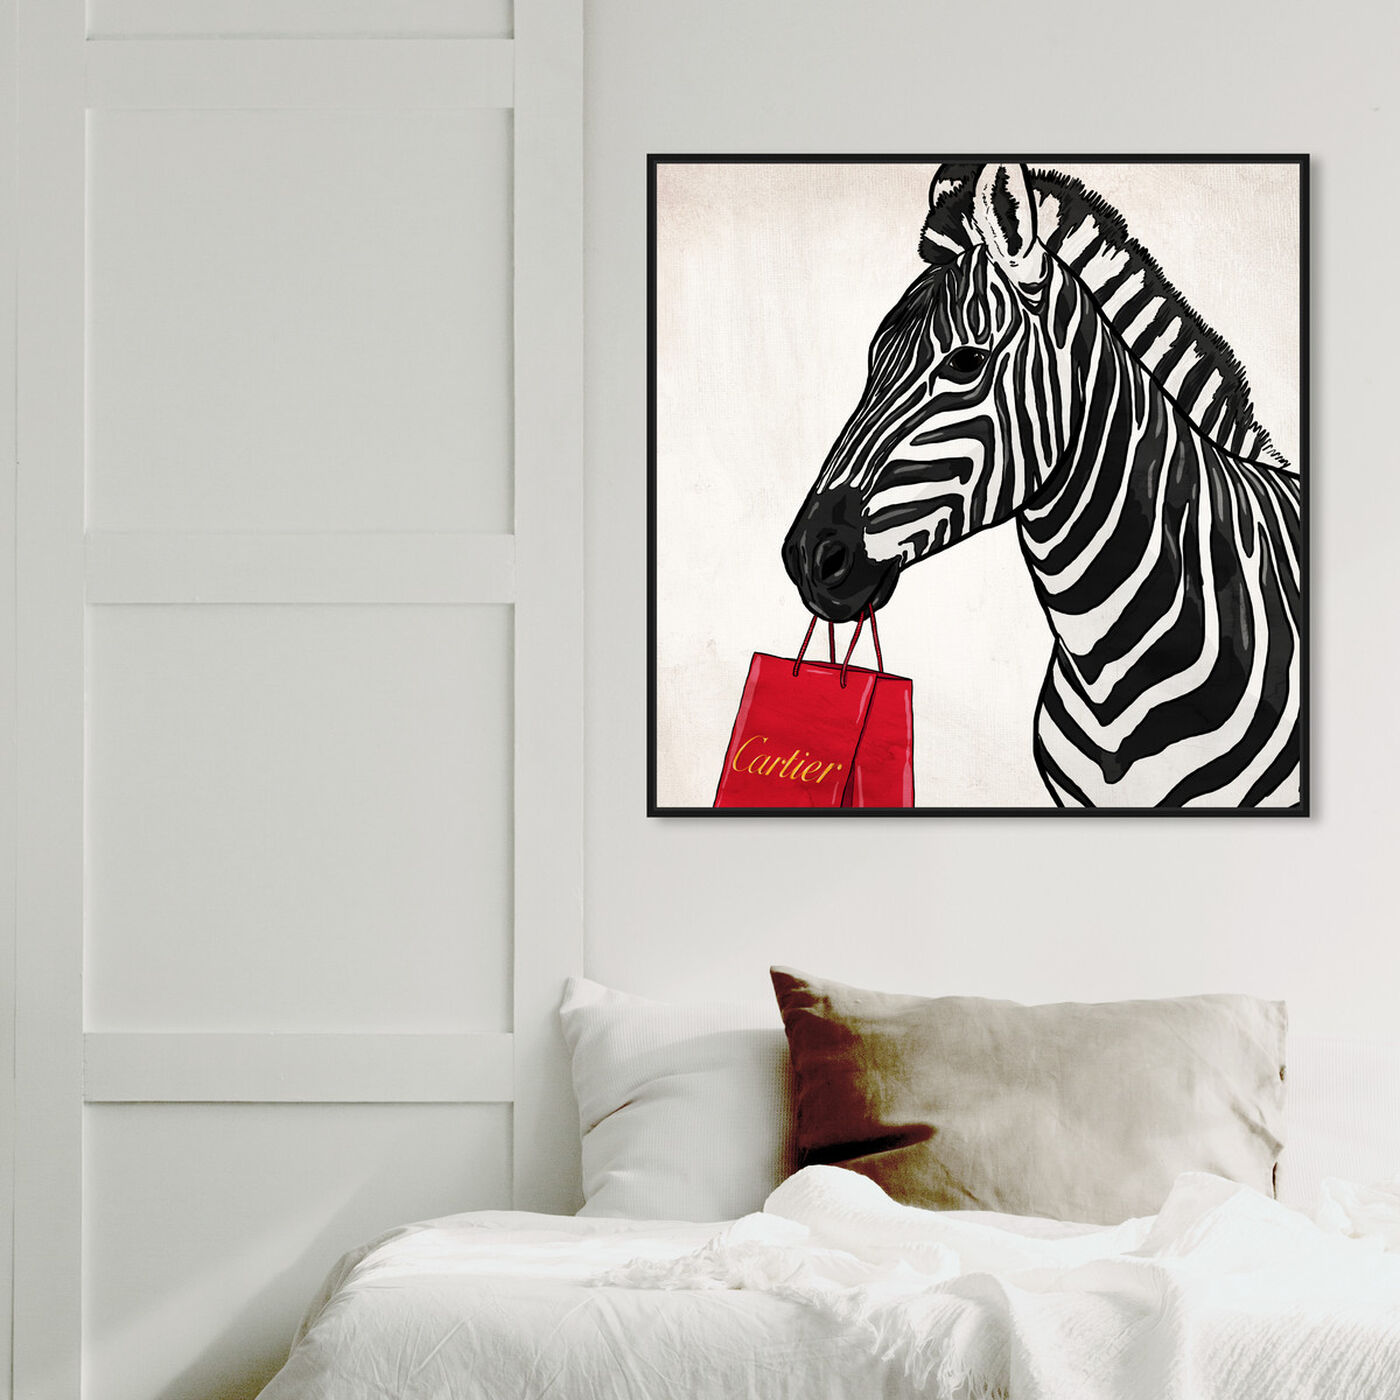 Hanging view of Expensive Zebra featuring fashion and glam and fashion art.